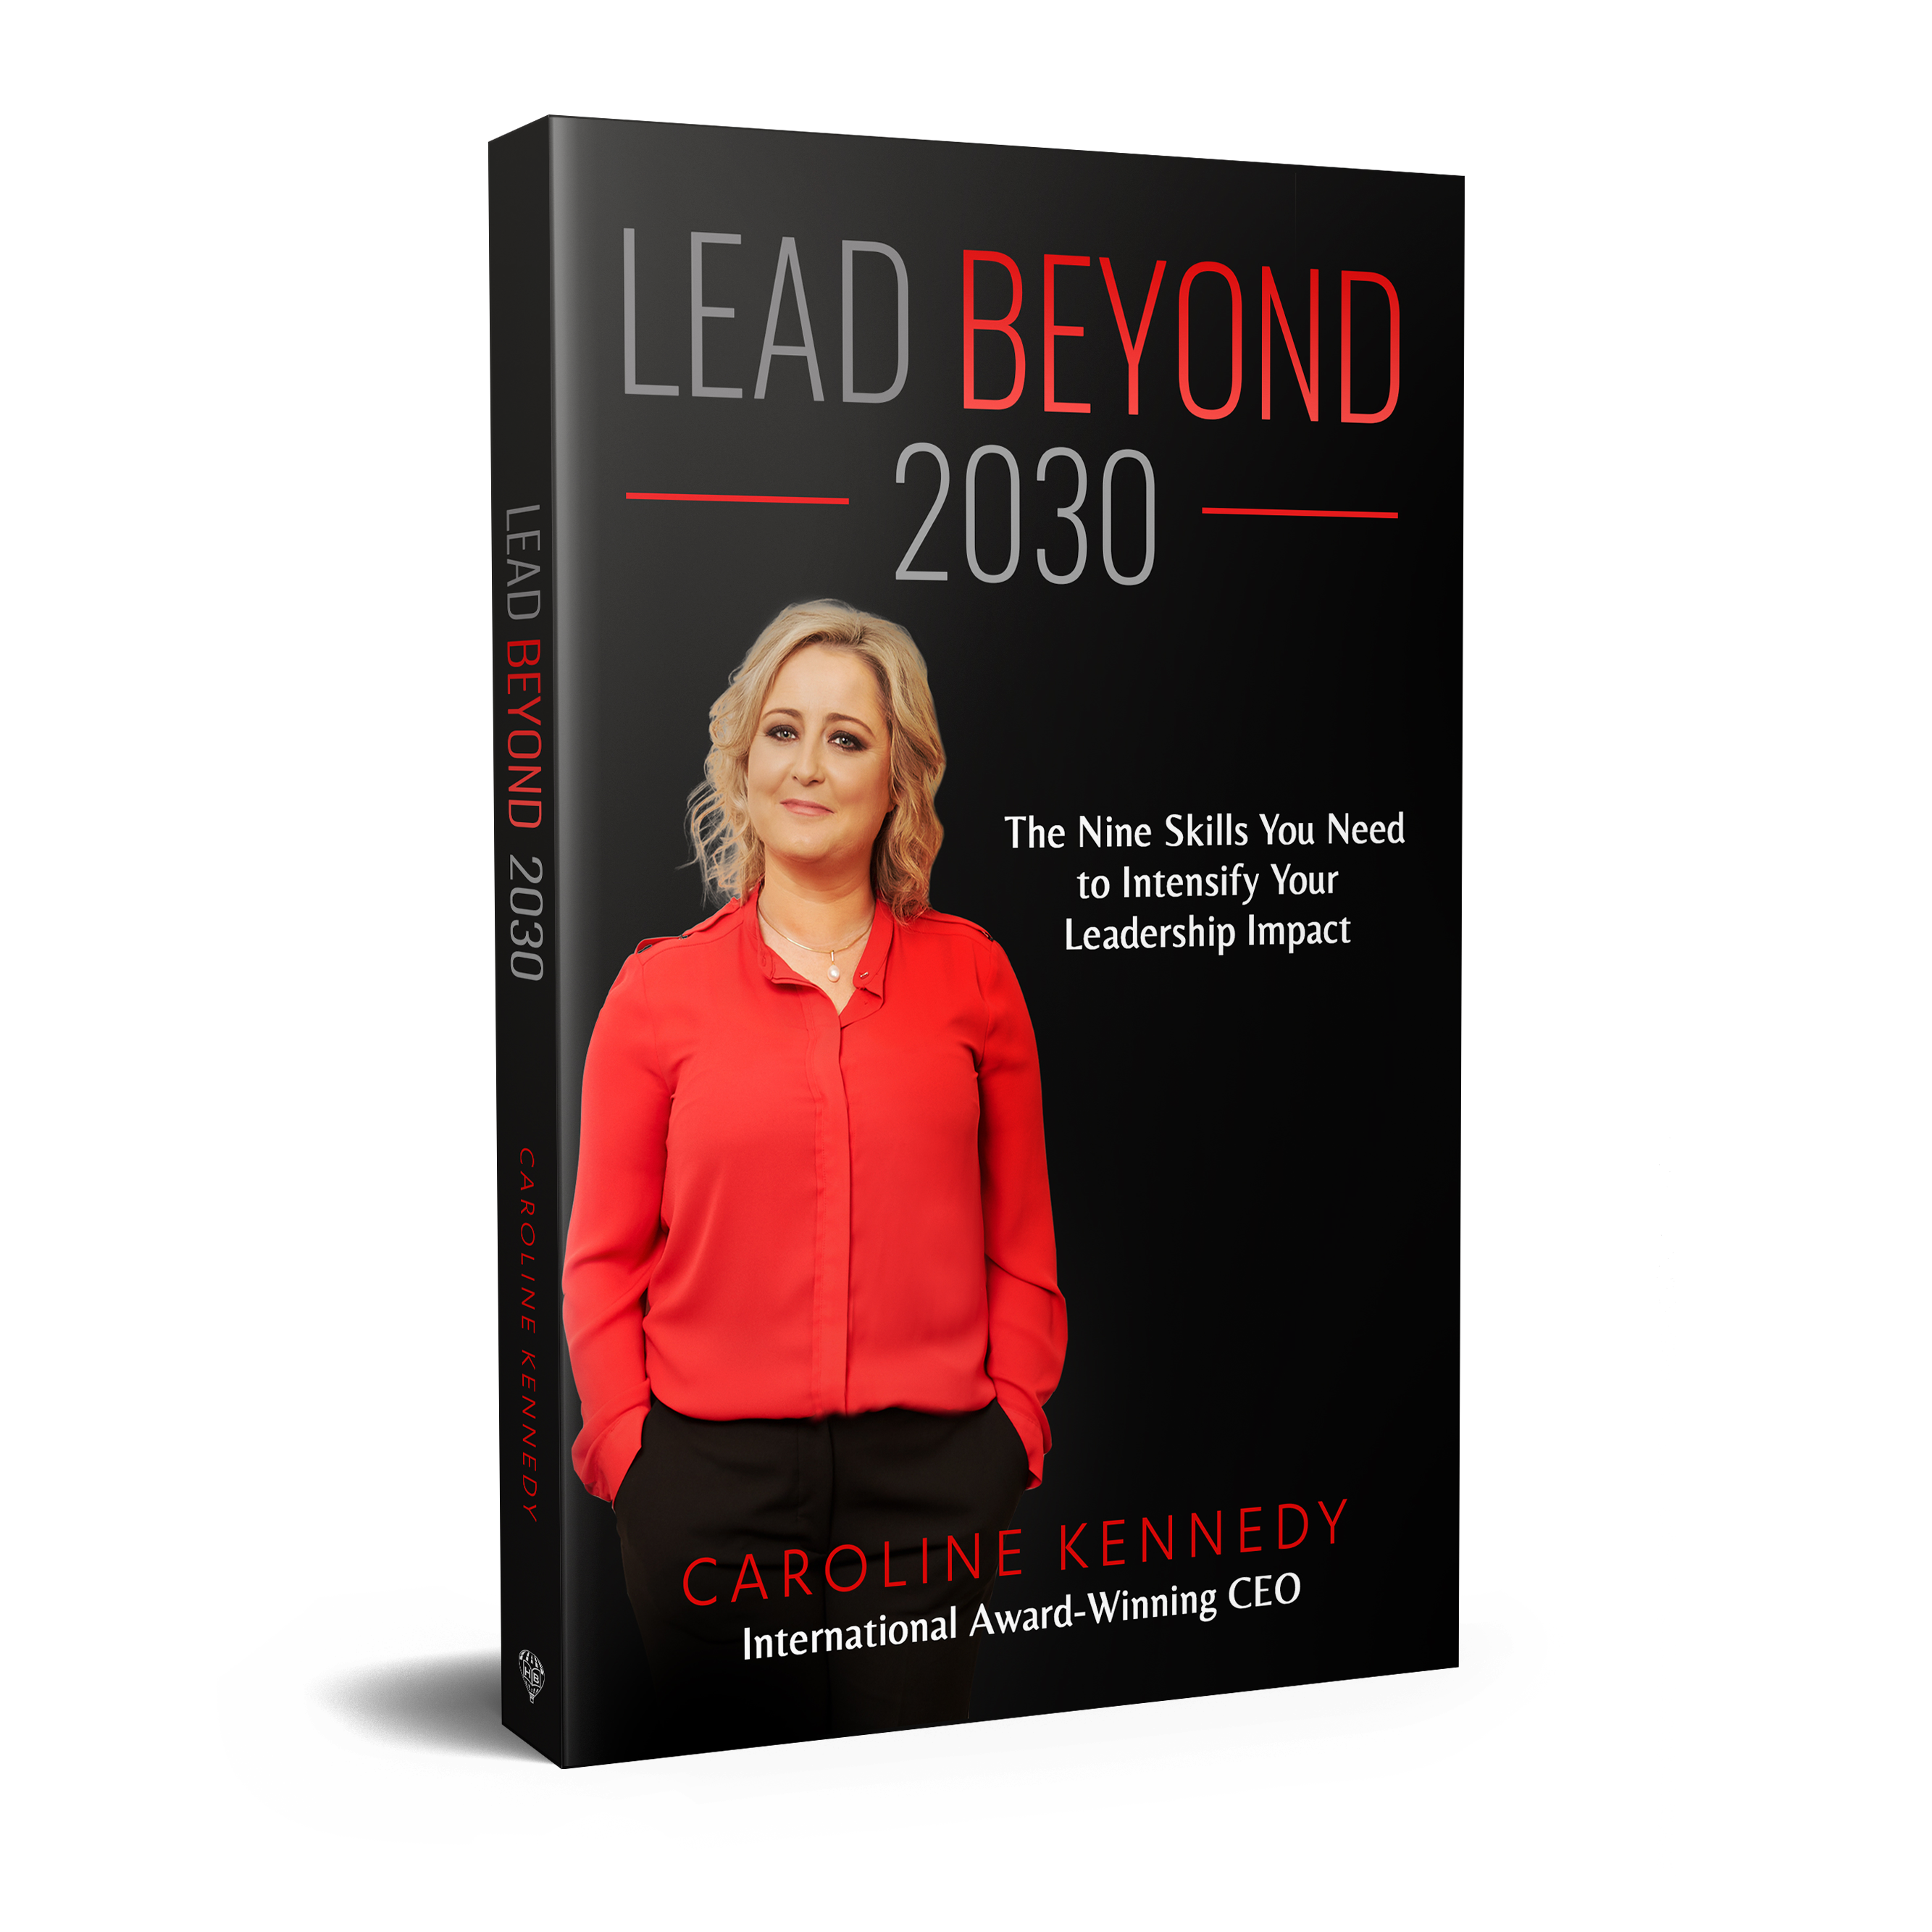 Lead Beyond 2030 - The Nine skills you need to intensify your leadership impact.